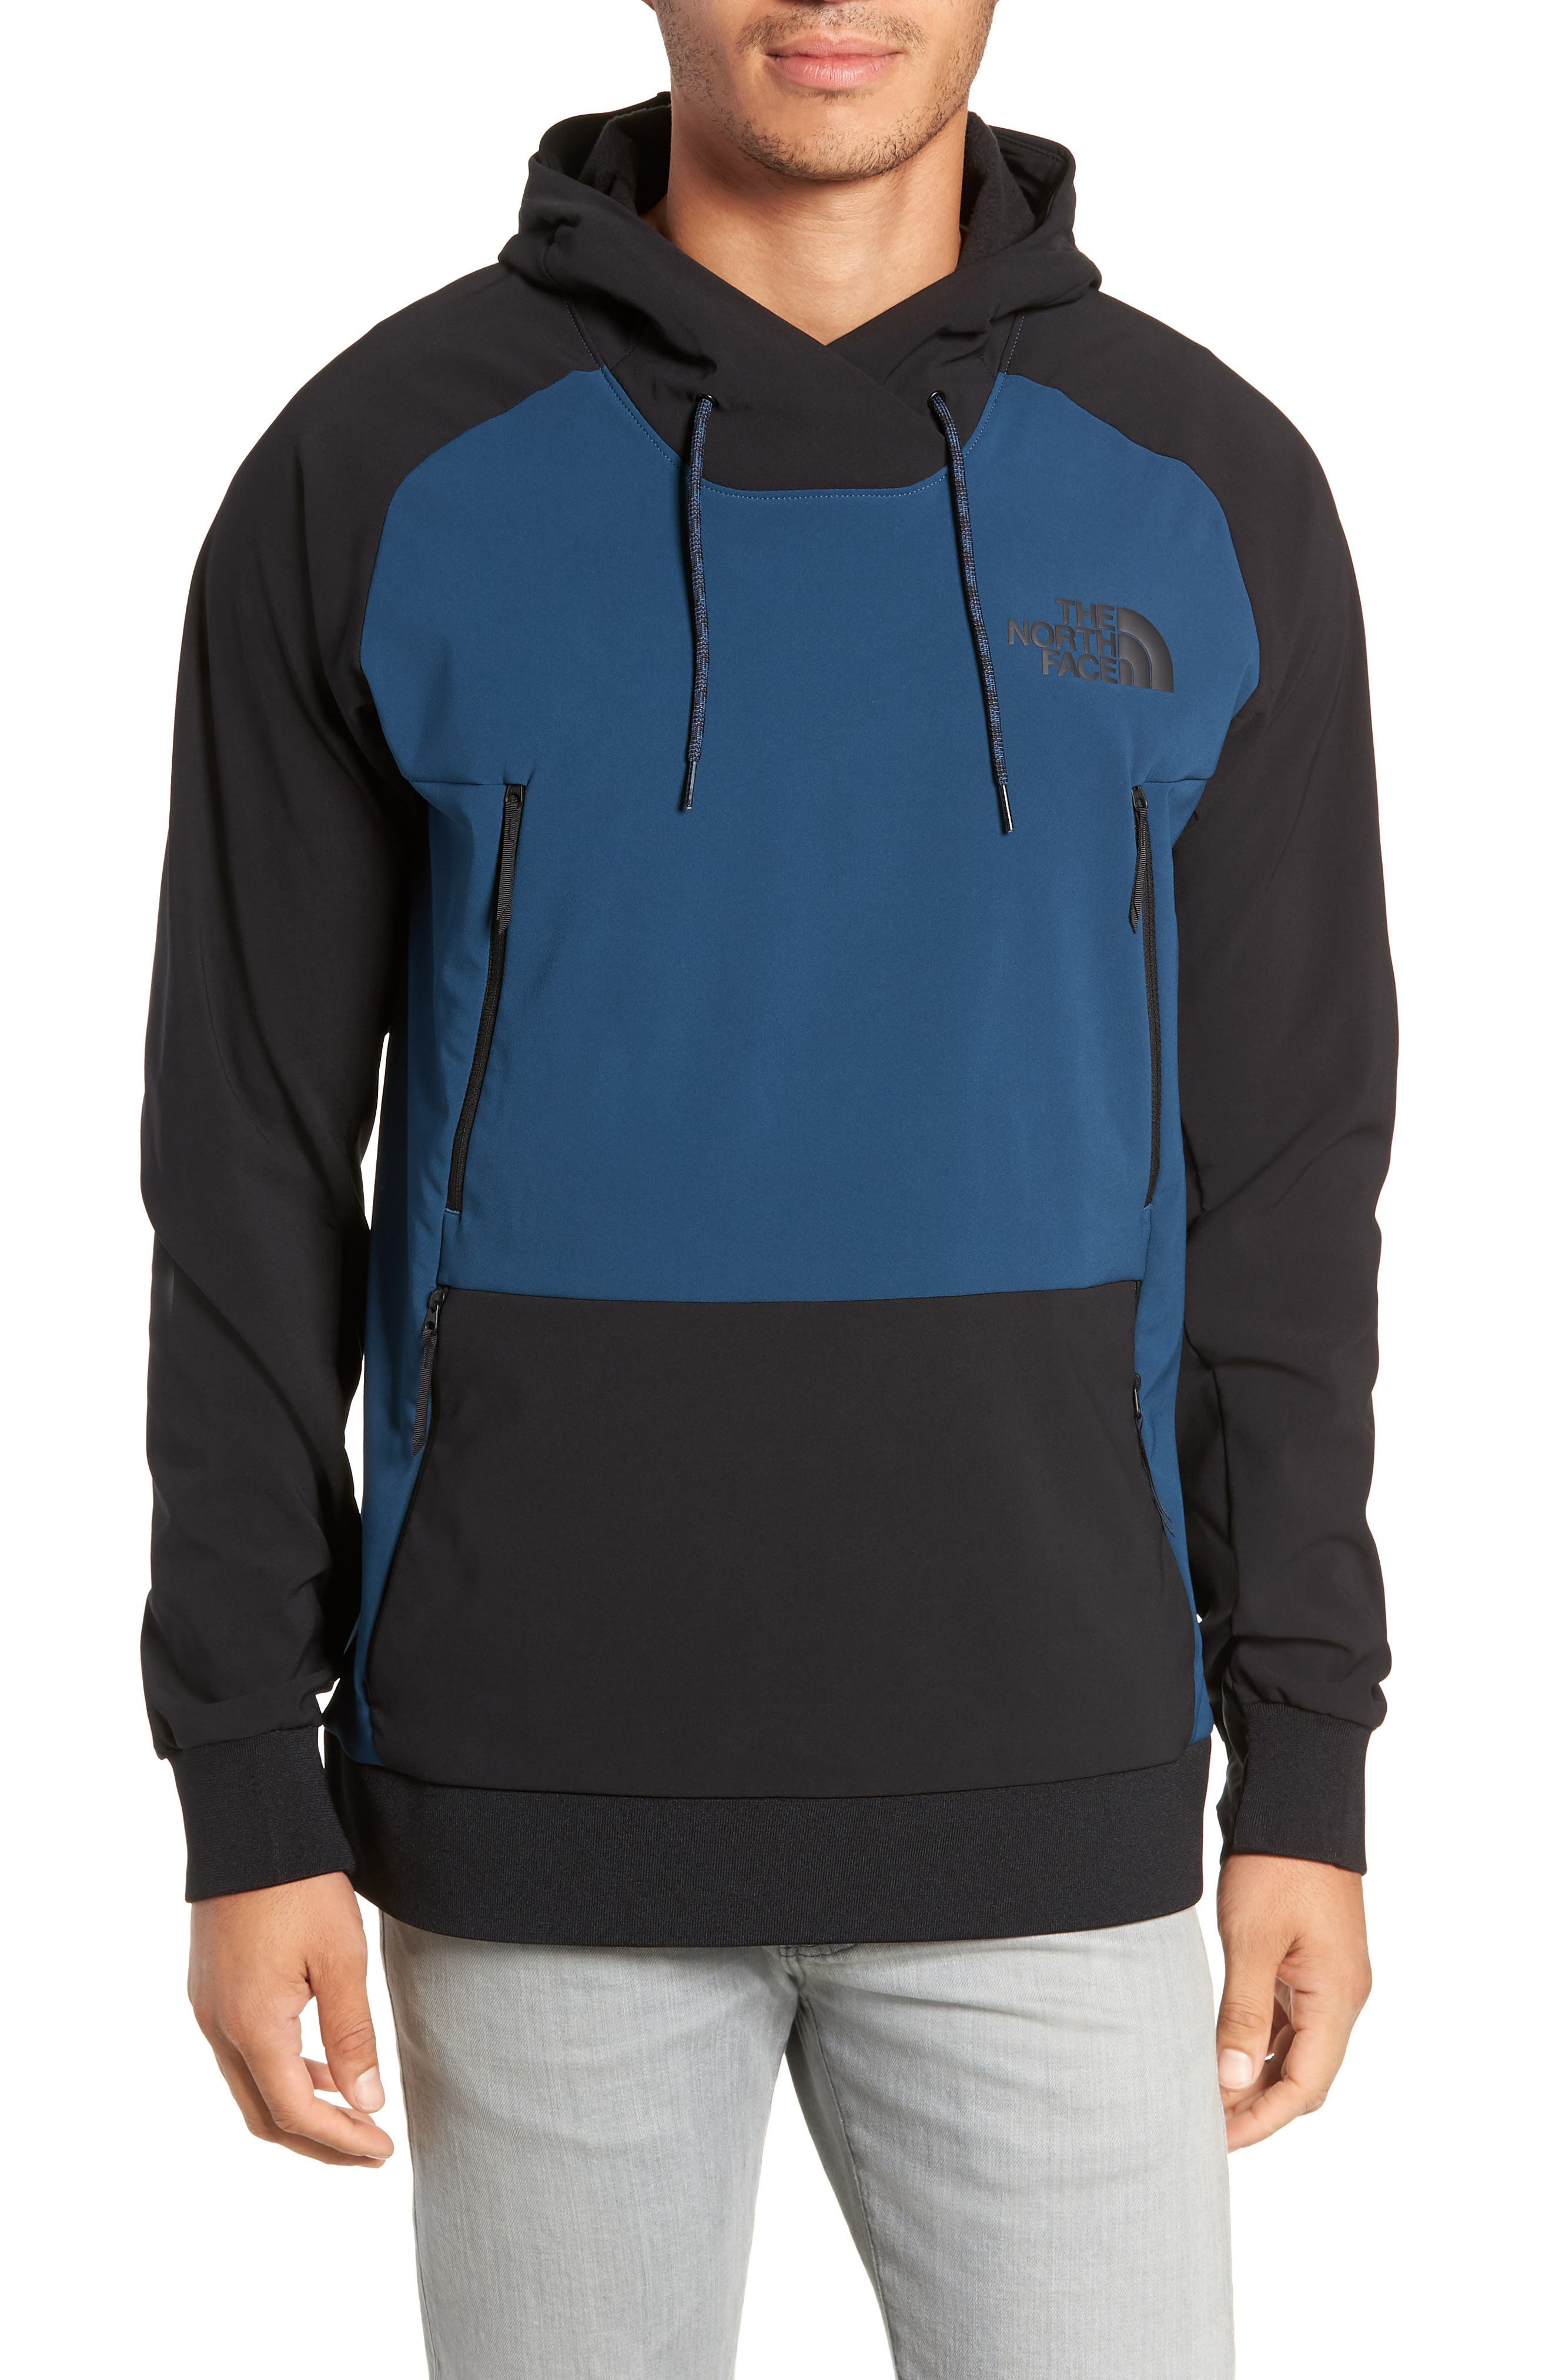 Tekno Pullover Hoodie,                         Main,                         color, BLUE WING TEAL/ TNF BLACK